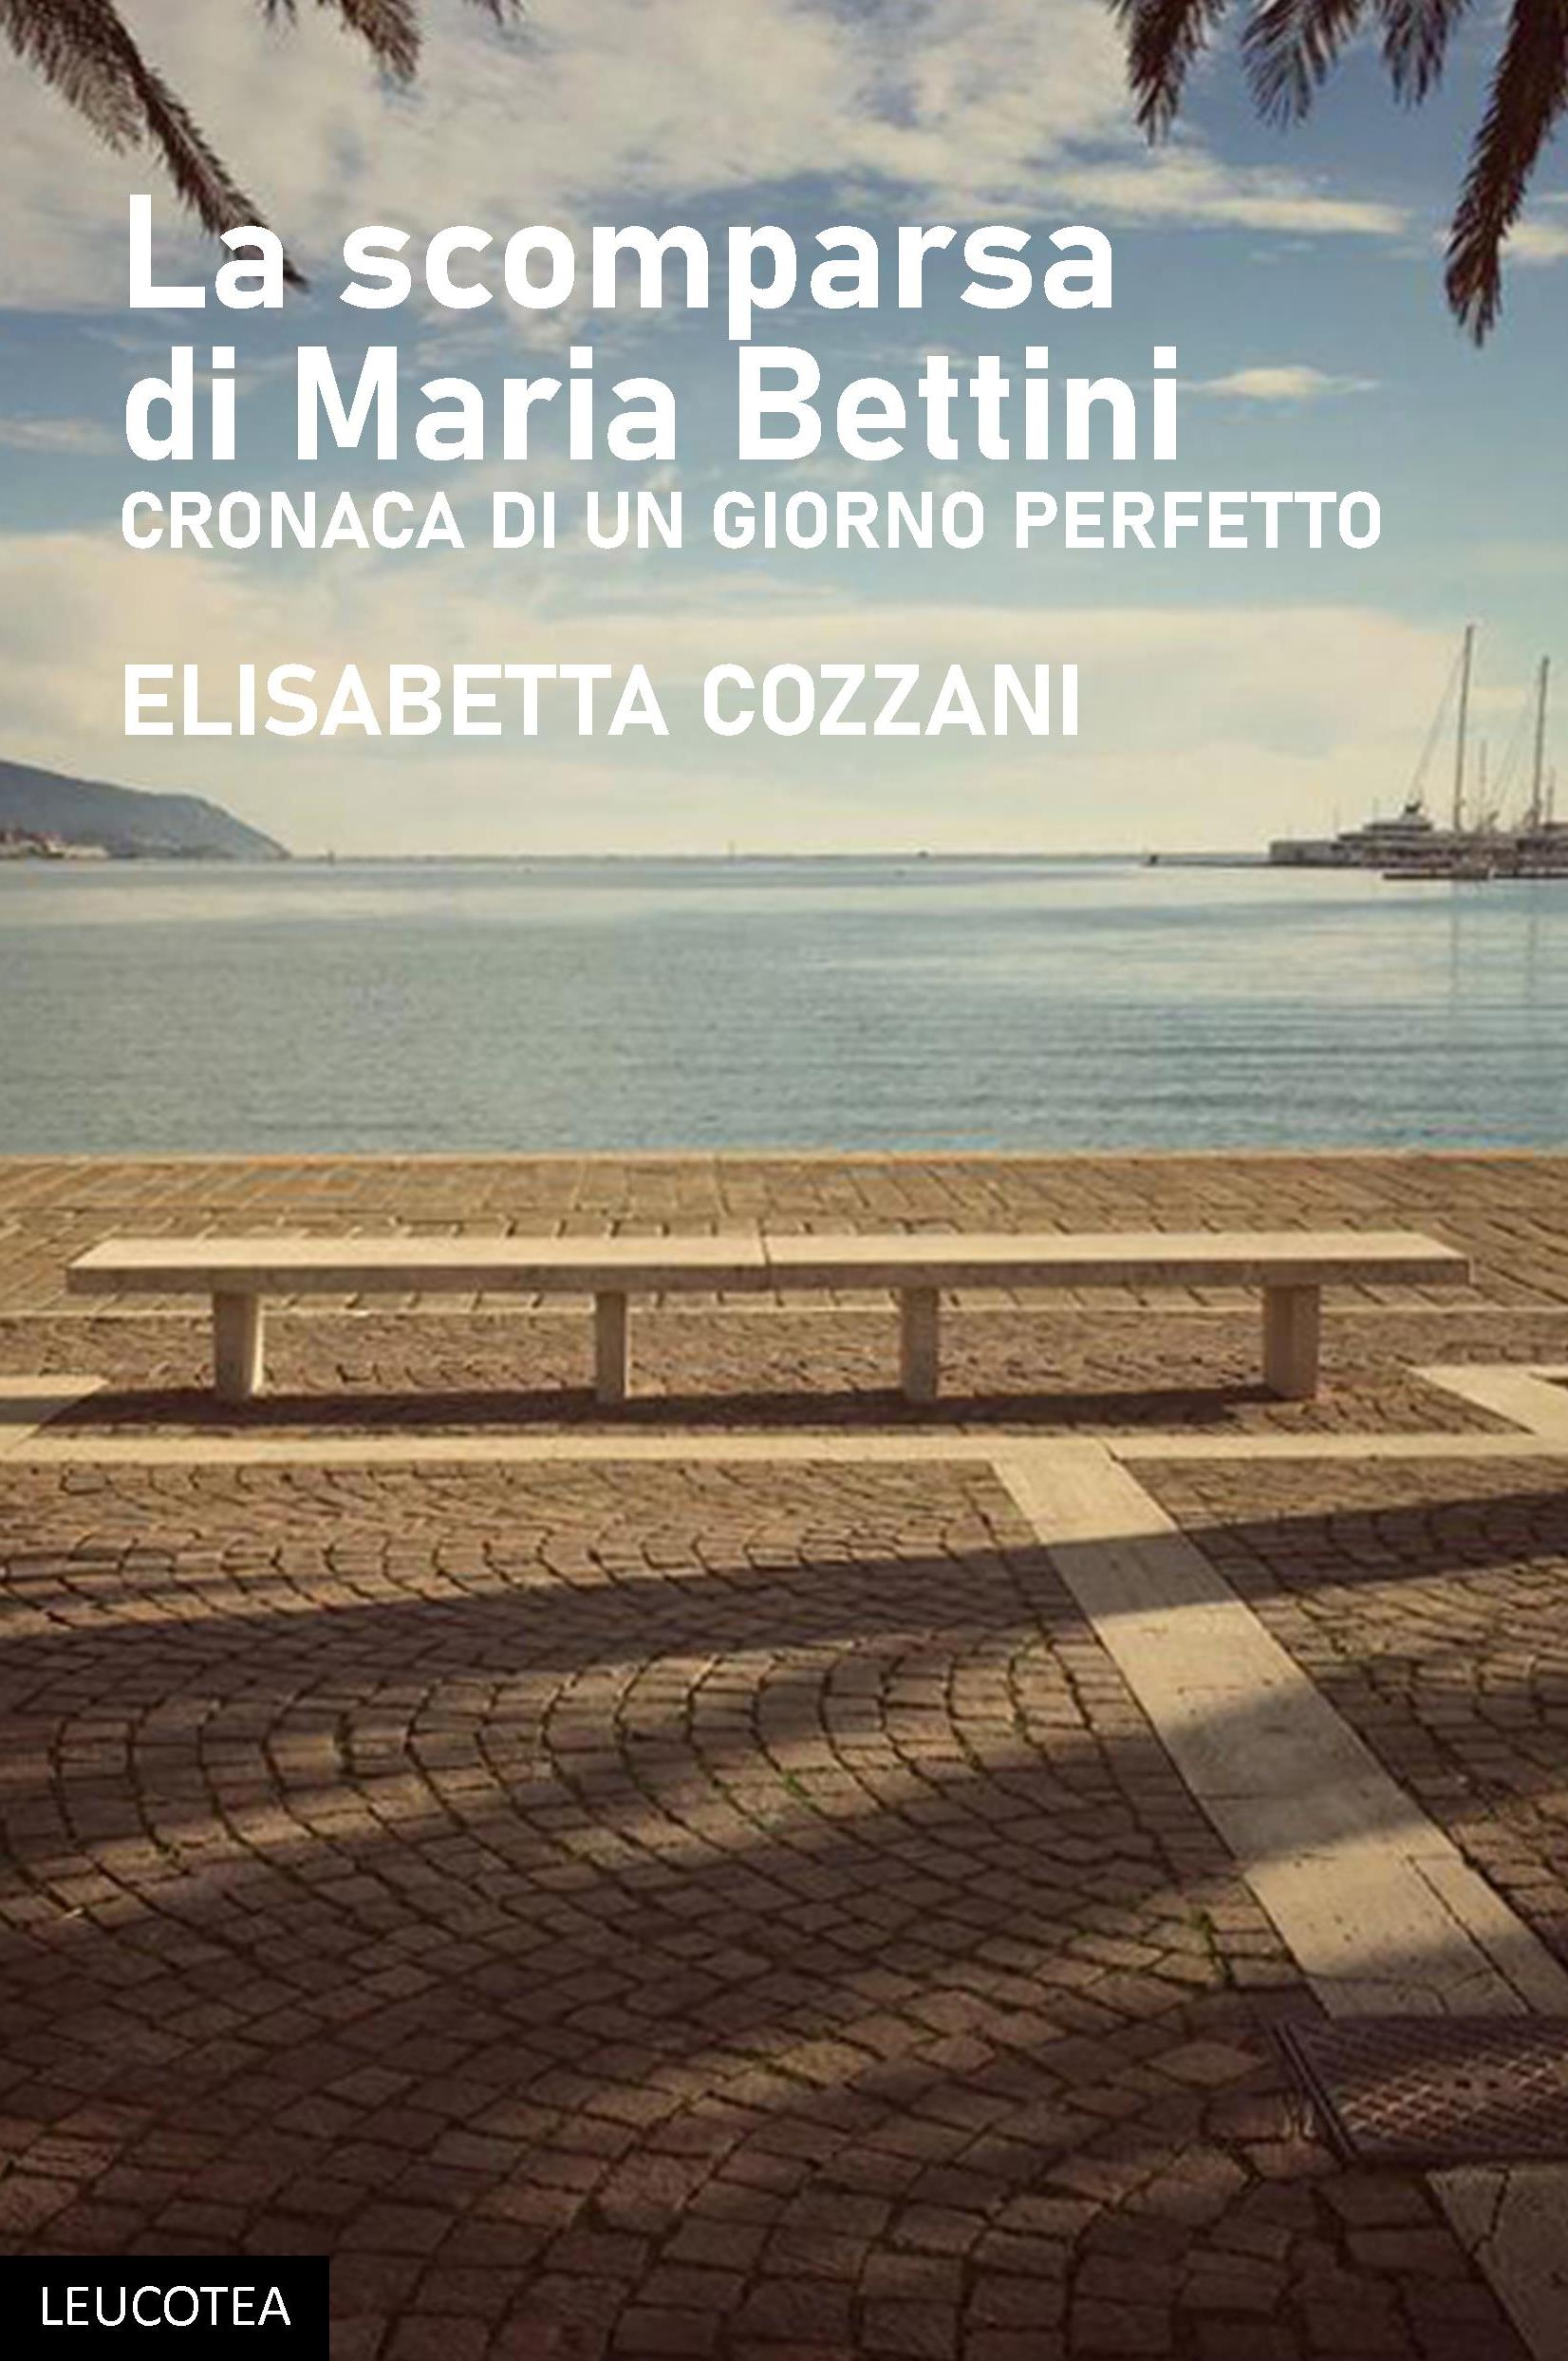 La scomparsa di Maria Bettini